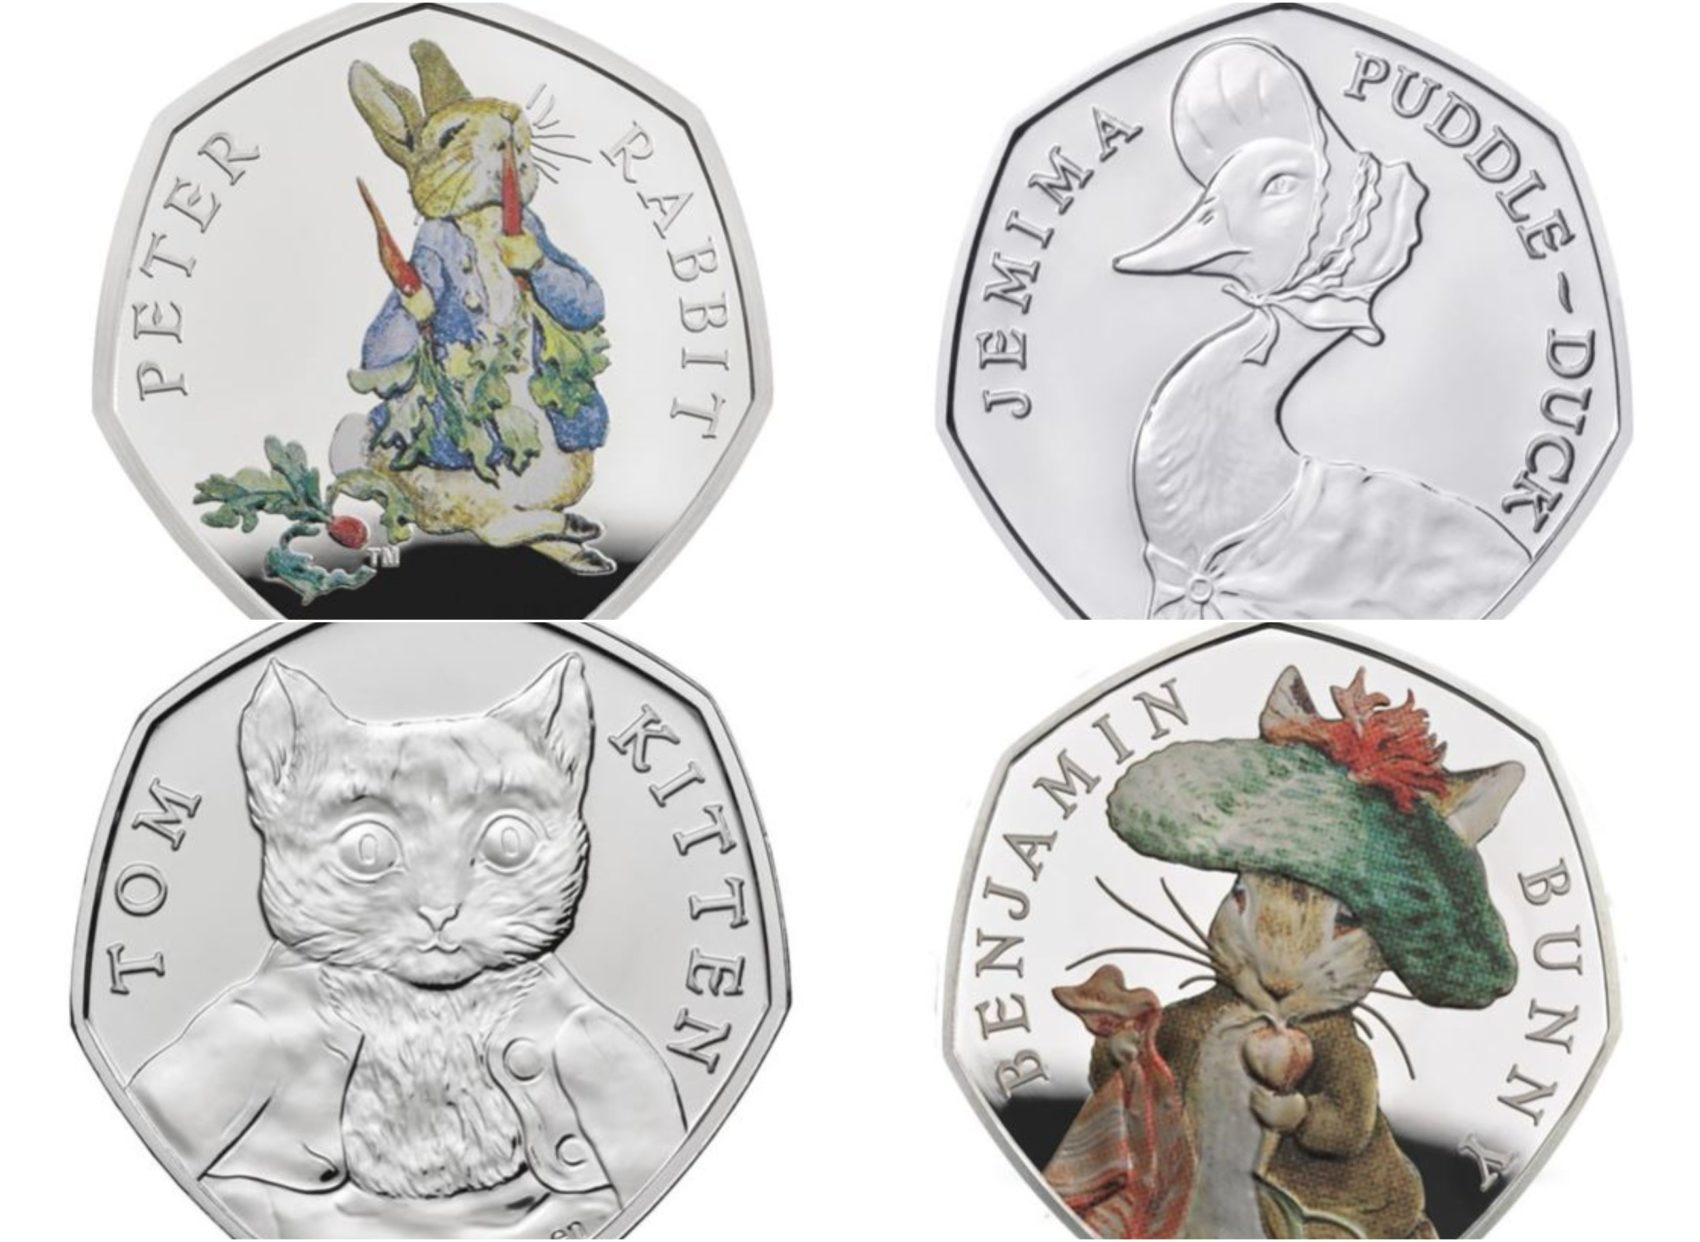 Beatrix Potter 50p Coins How Much Is Each Coin Worth From Peter Rabbit To Tom Kitten